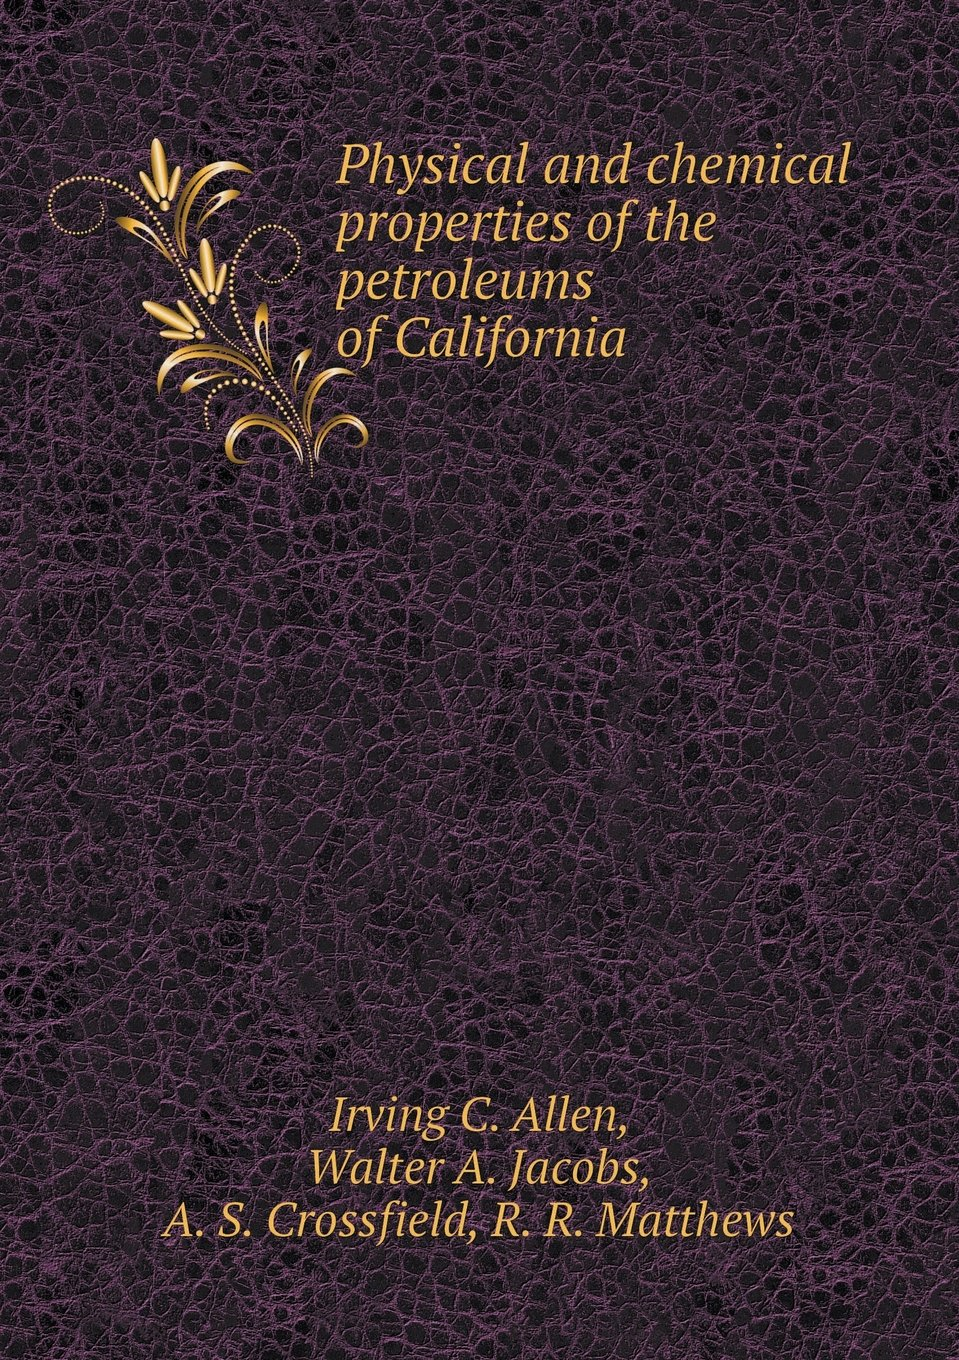 Download Physical and chemical properties of the petroleums of California ebook